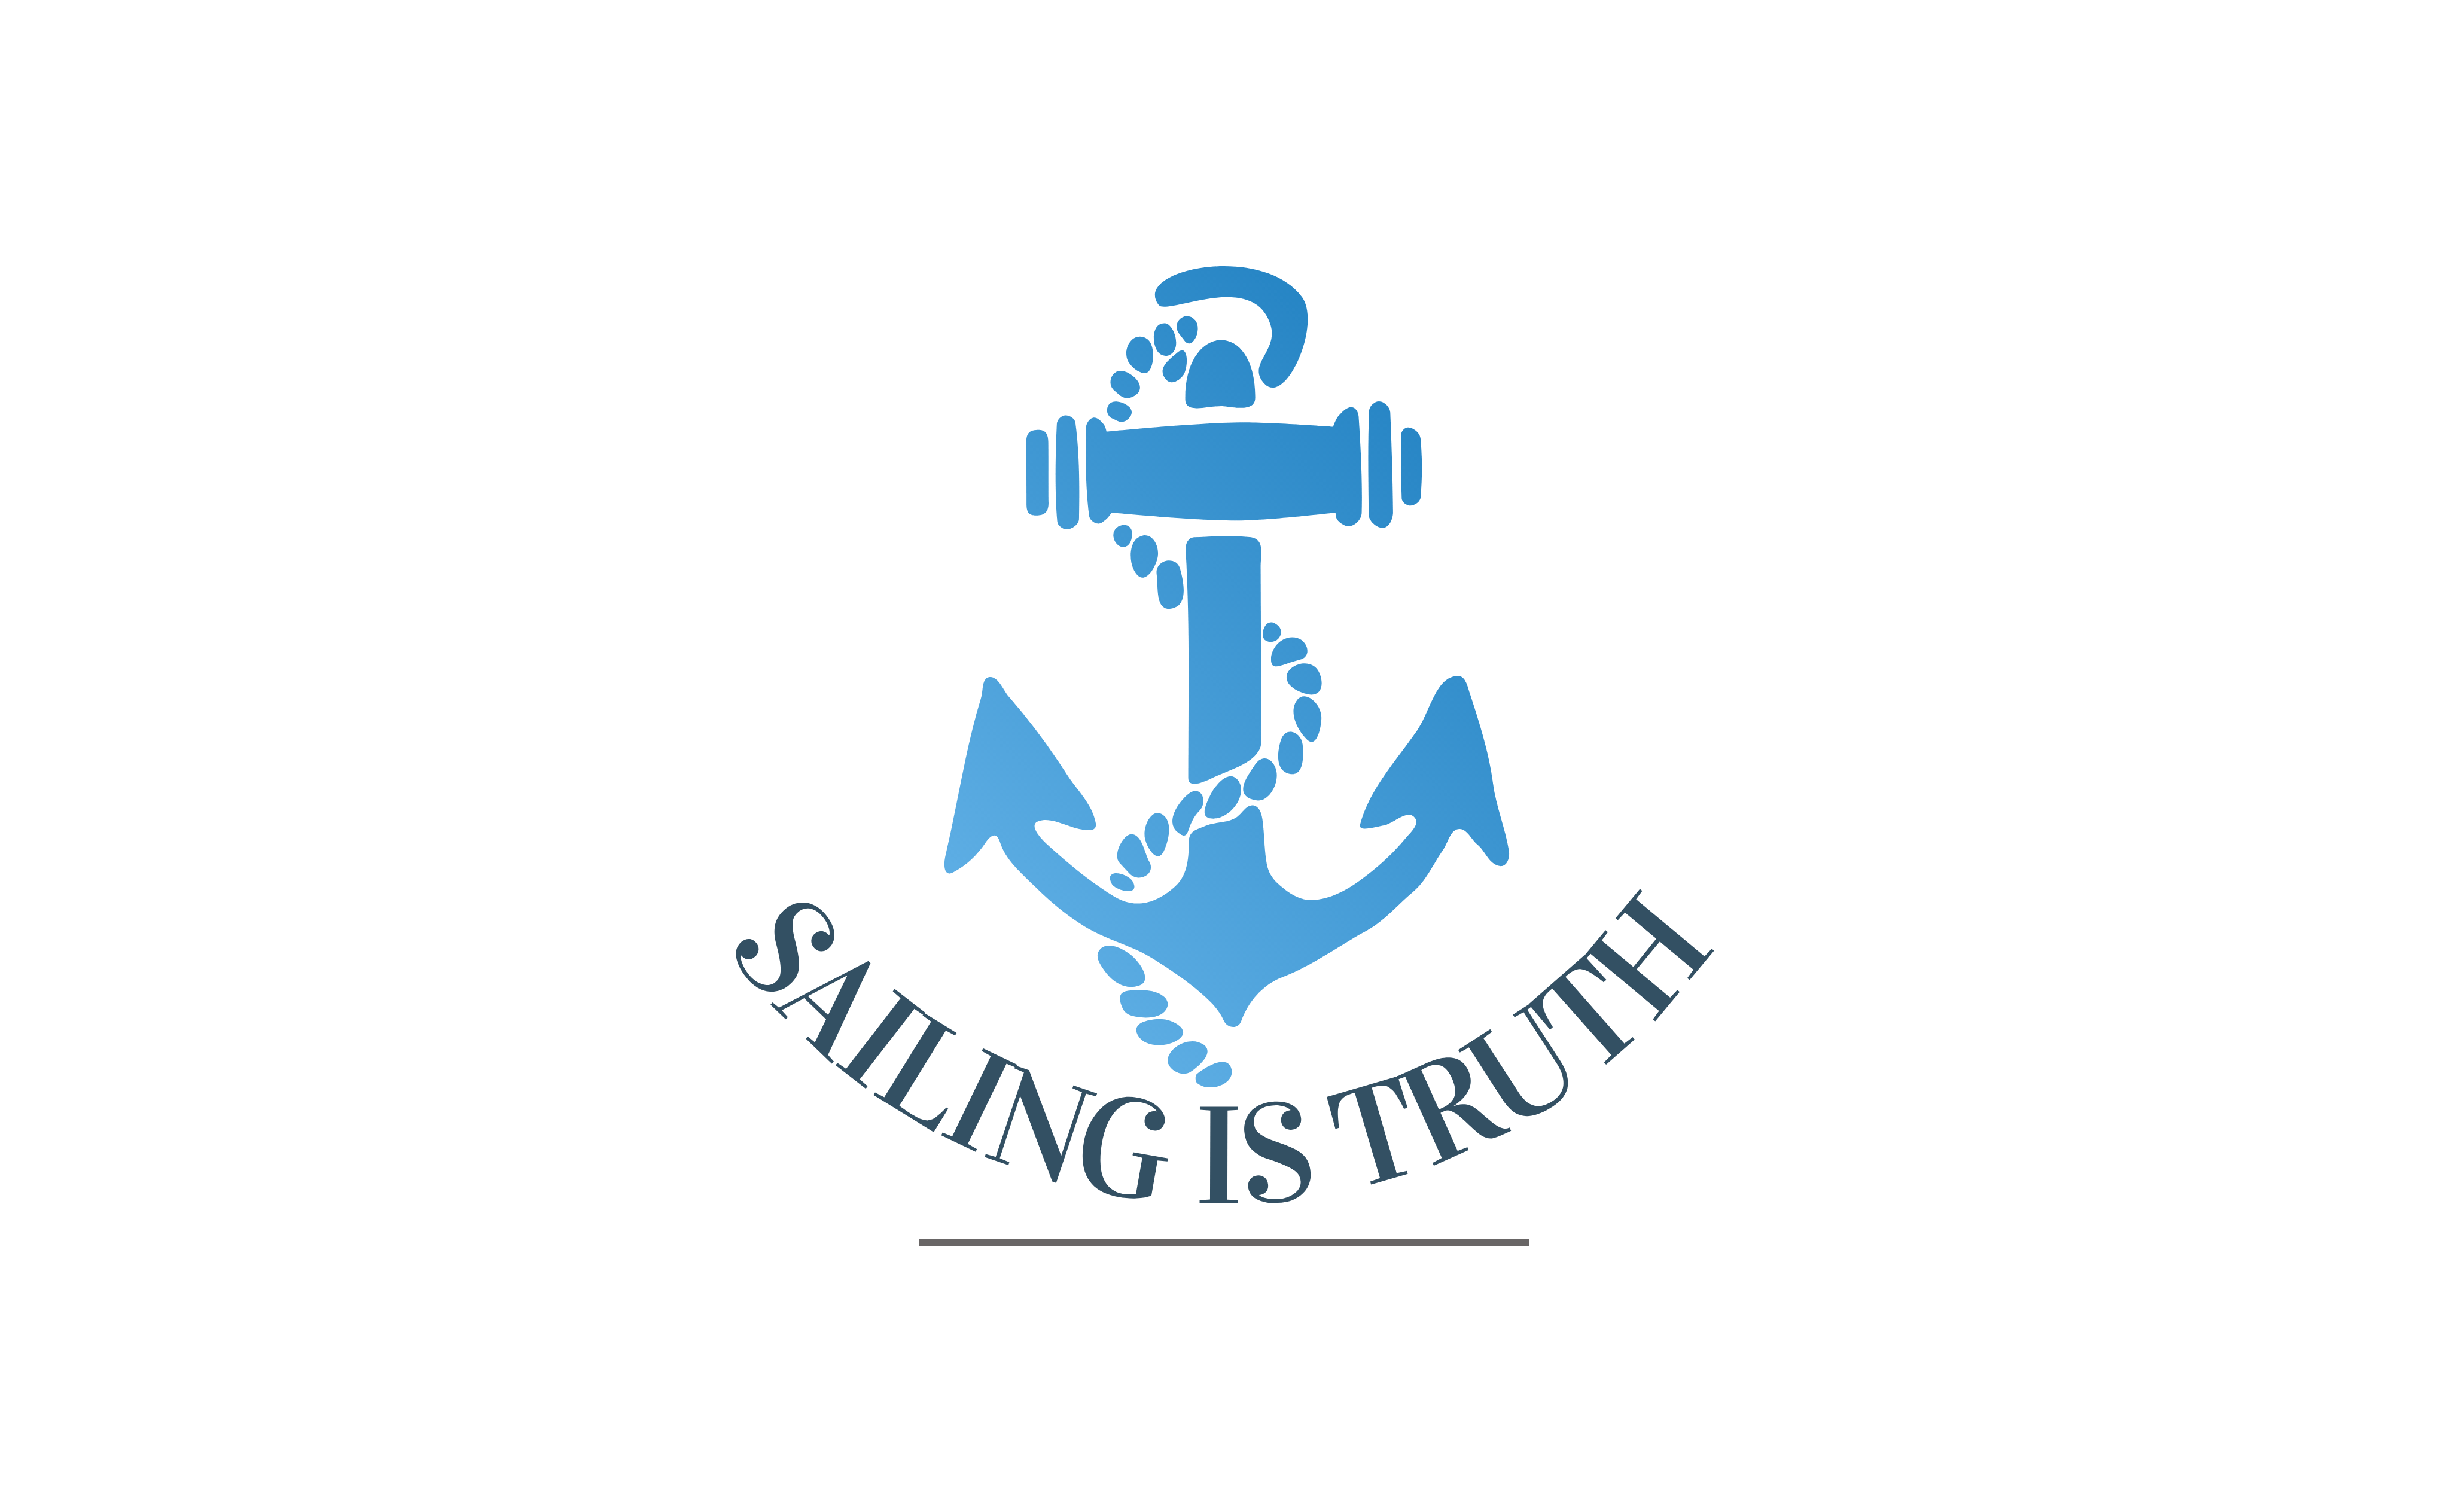 SAILING IS TRUTH